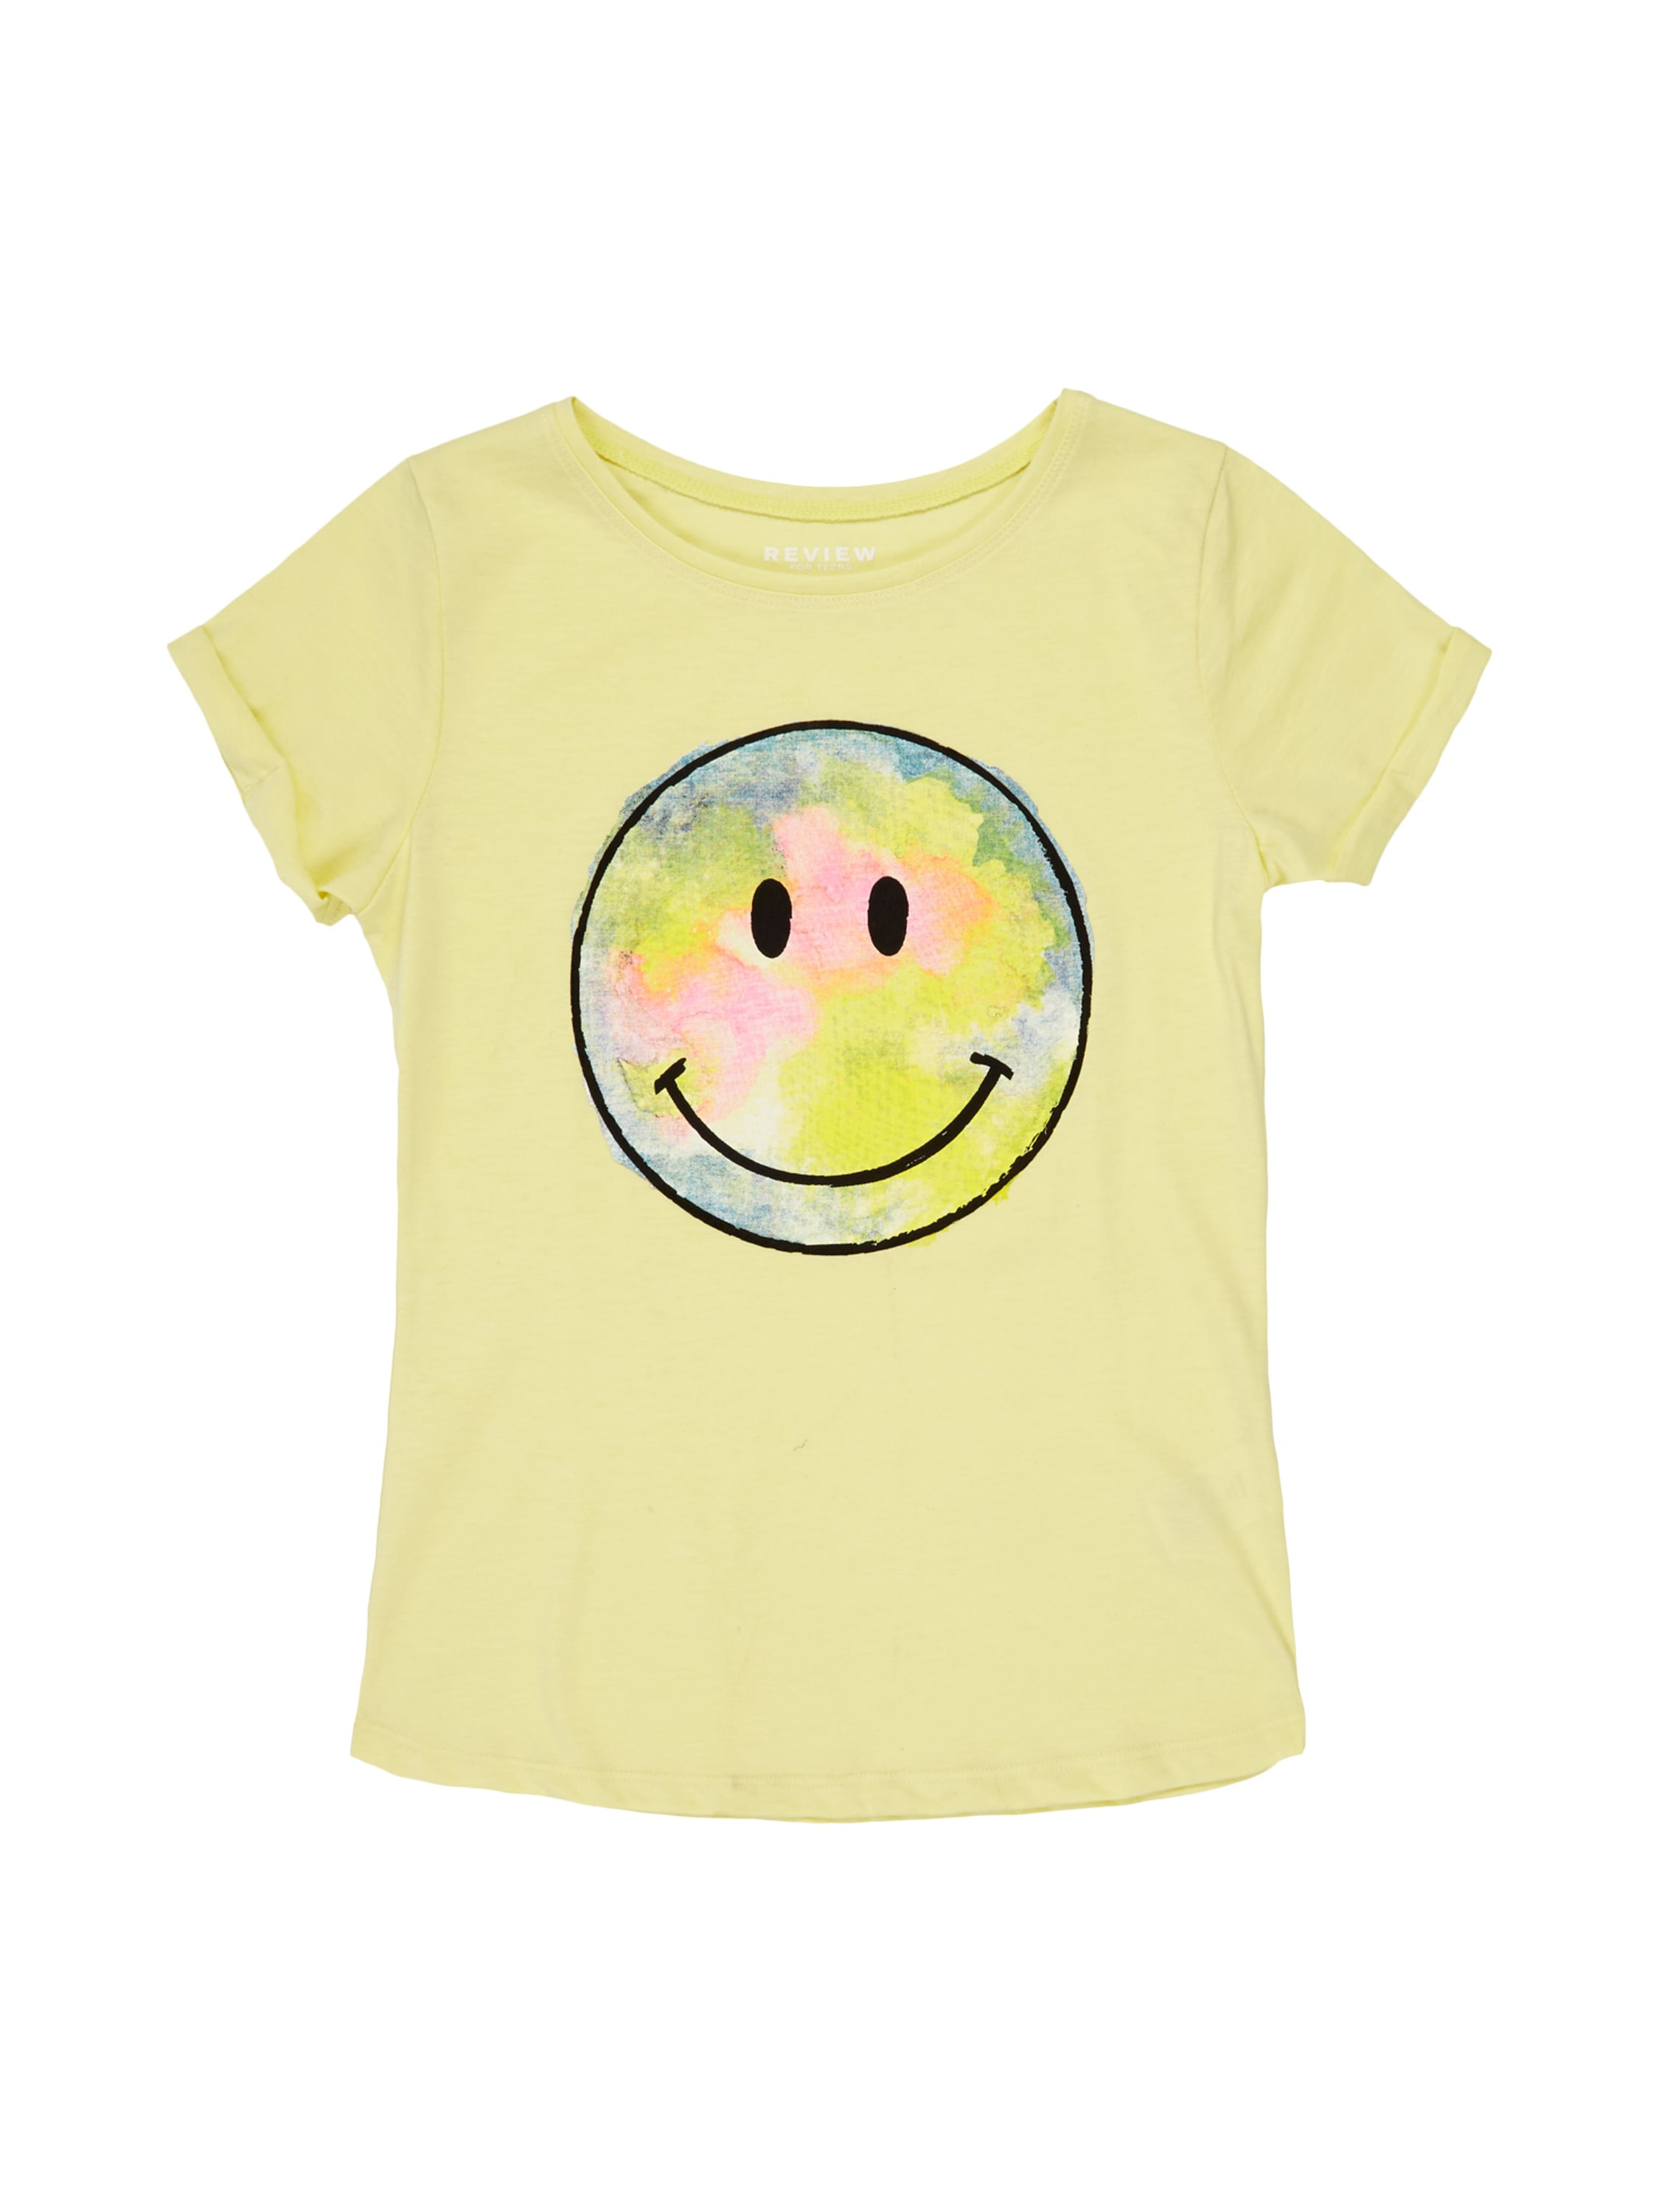 review for teens t shirt mit smiley print in gelb online. Black Bedroom Furniture Sets. Home Design Ideas